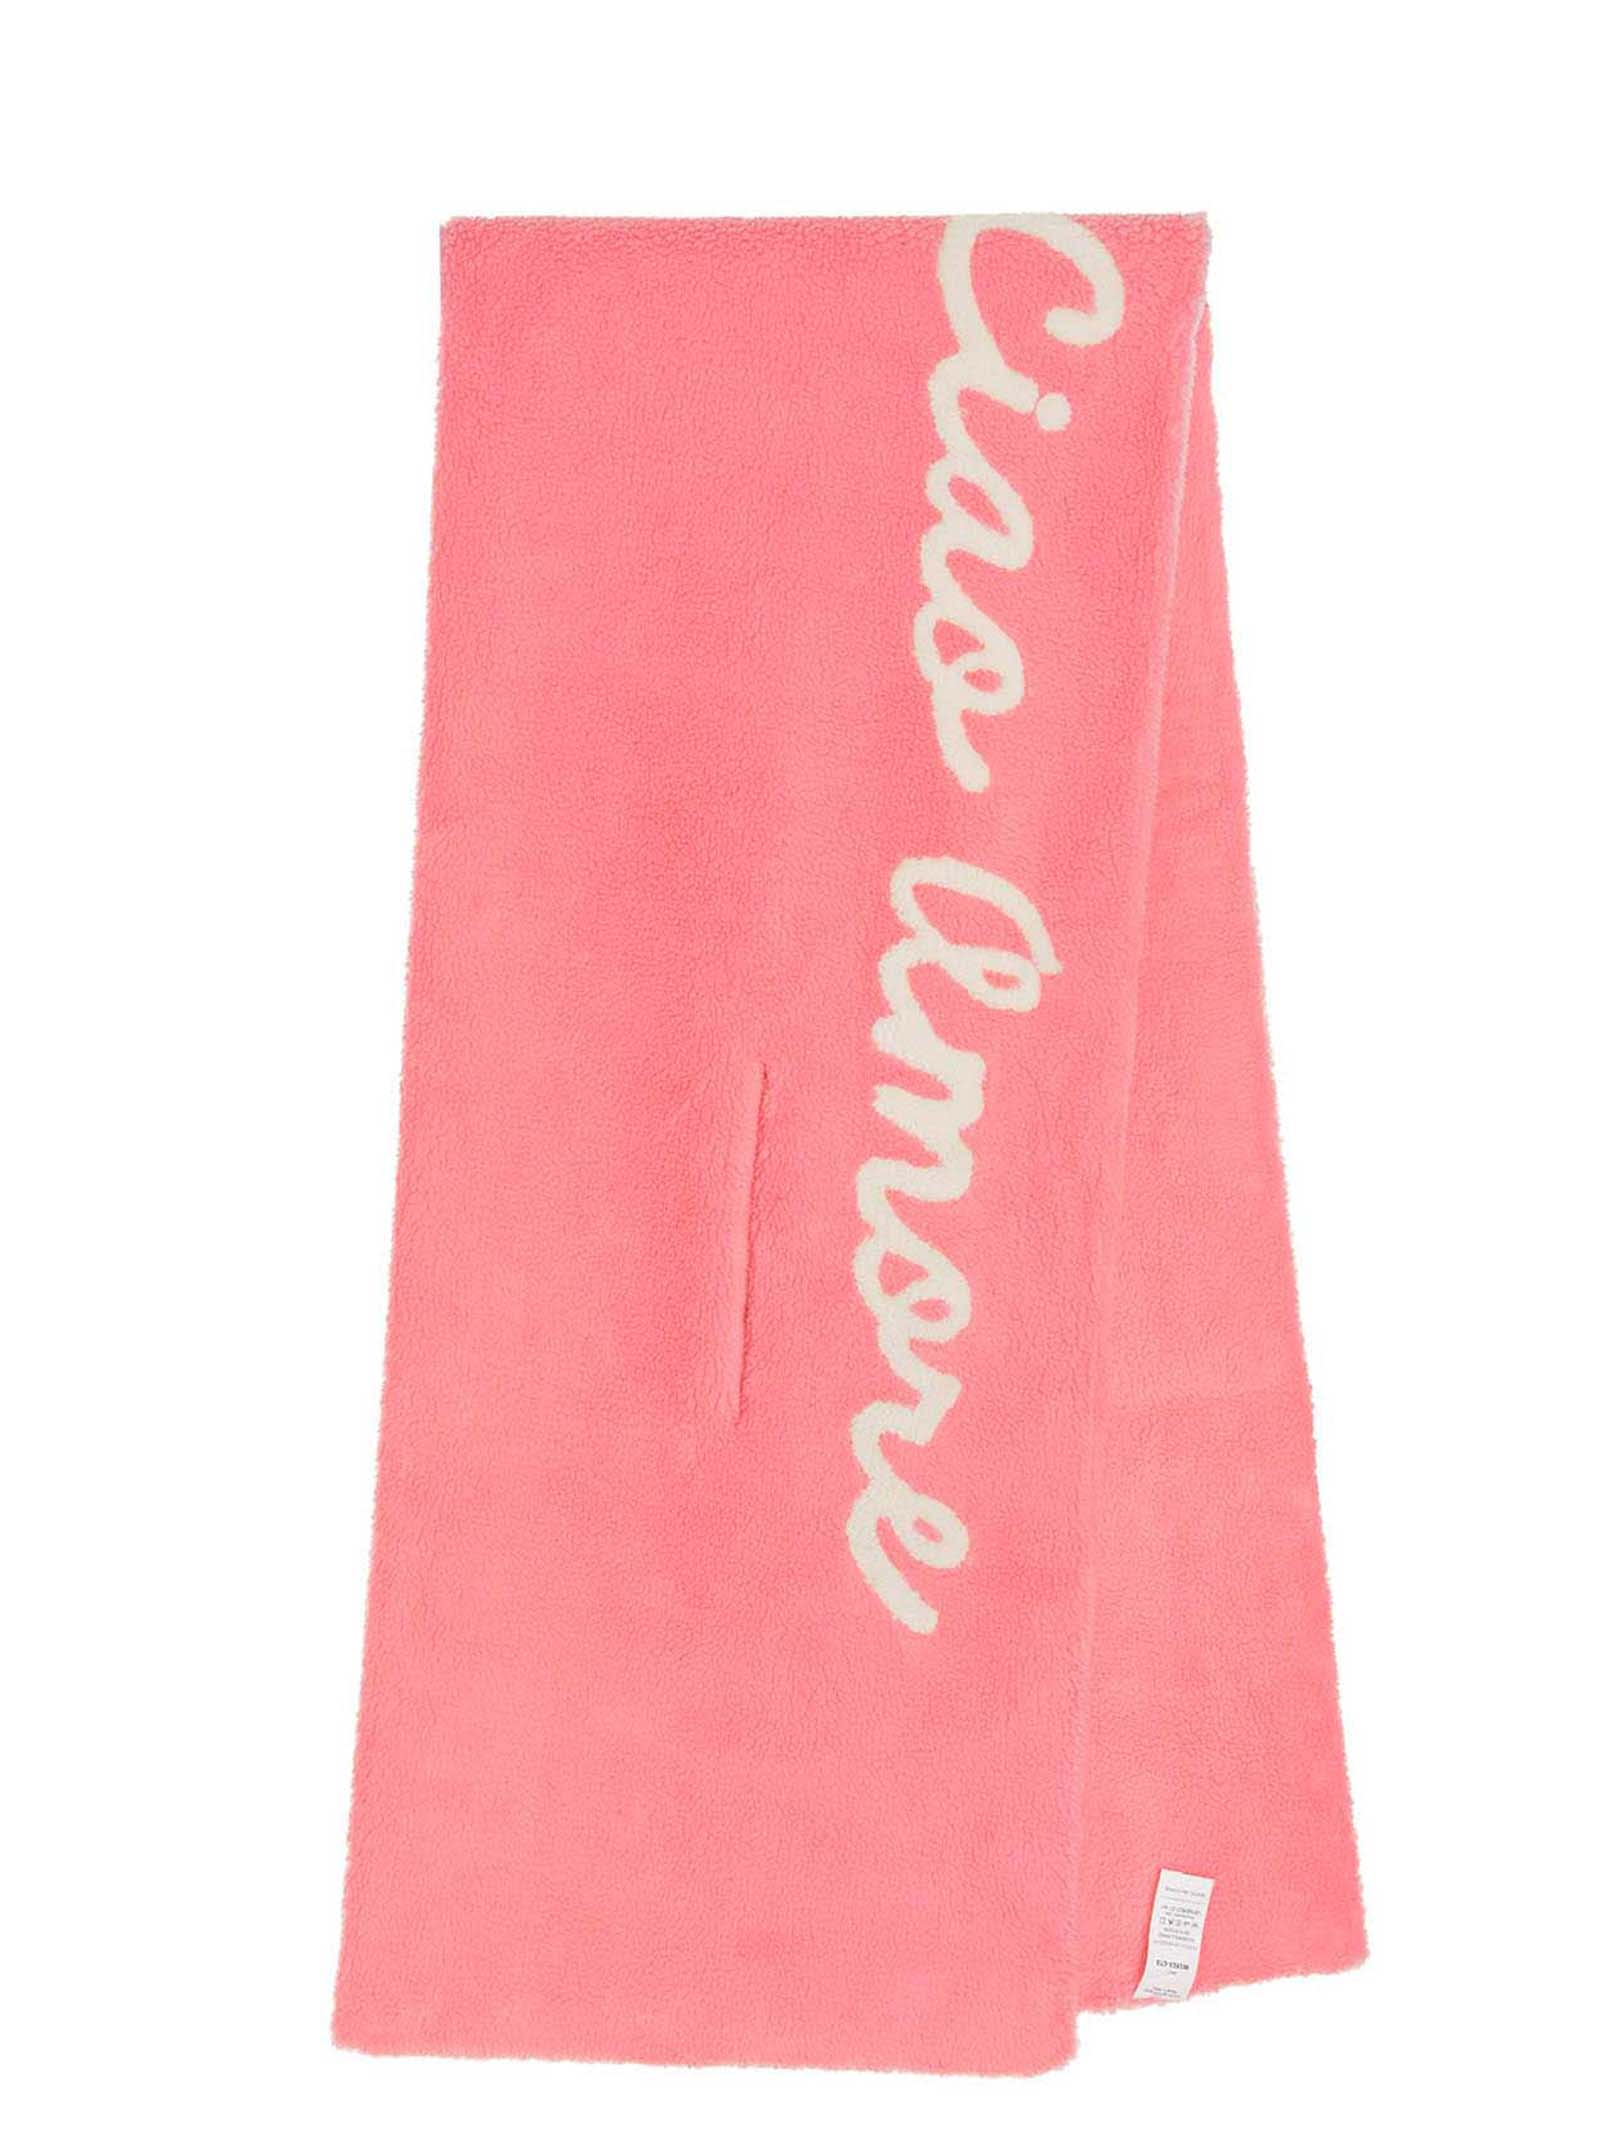 ciao Amore Scarf